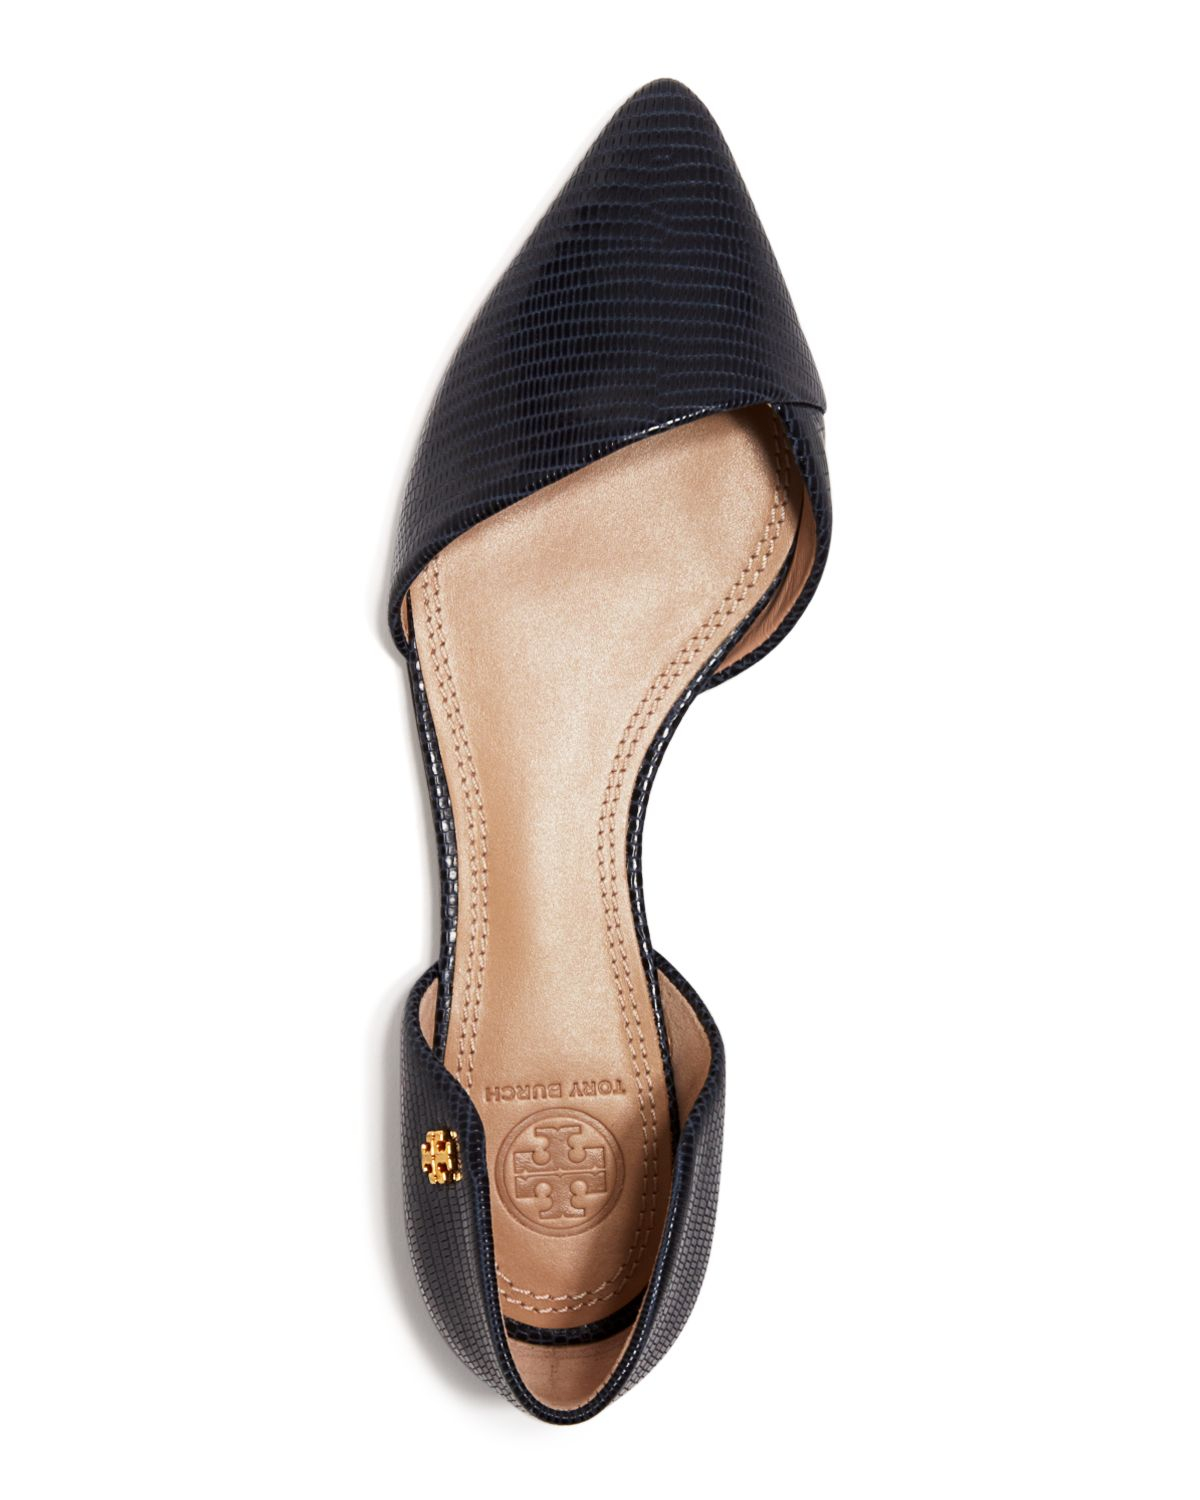 67aecbef28b Lyst - Tory Burch Pointed Toe D orsay Flats - Viv in Blue